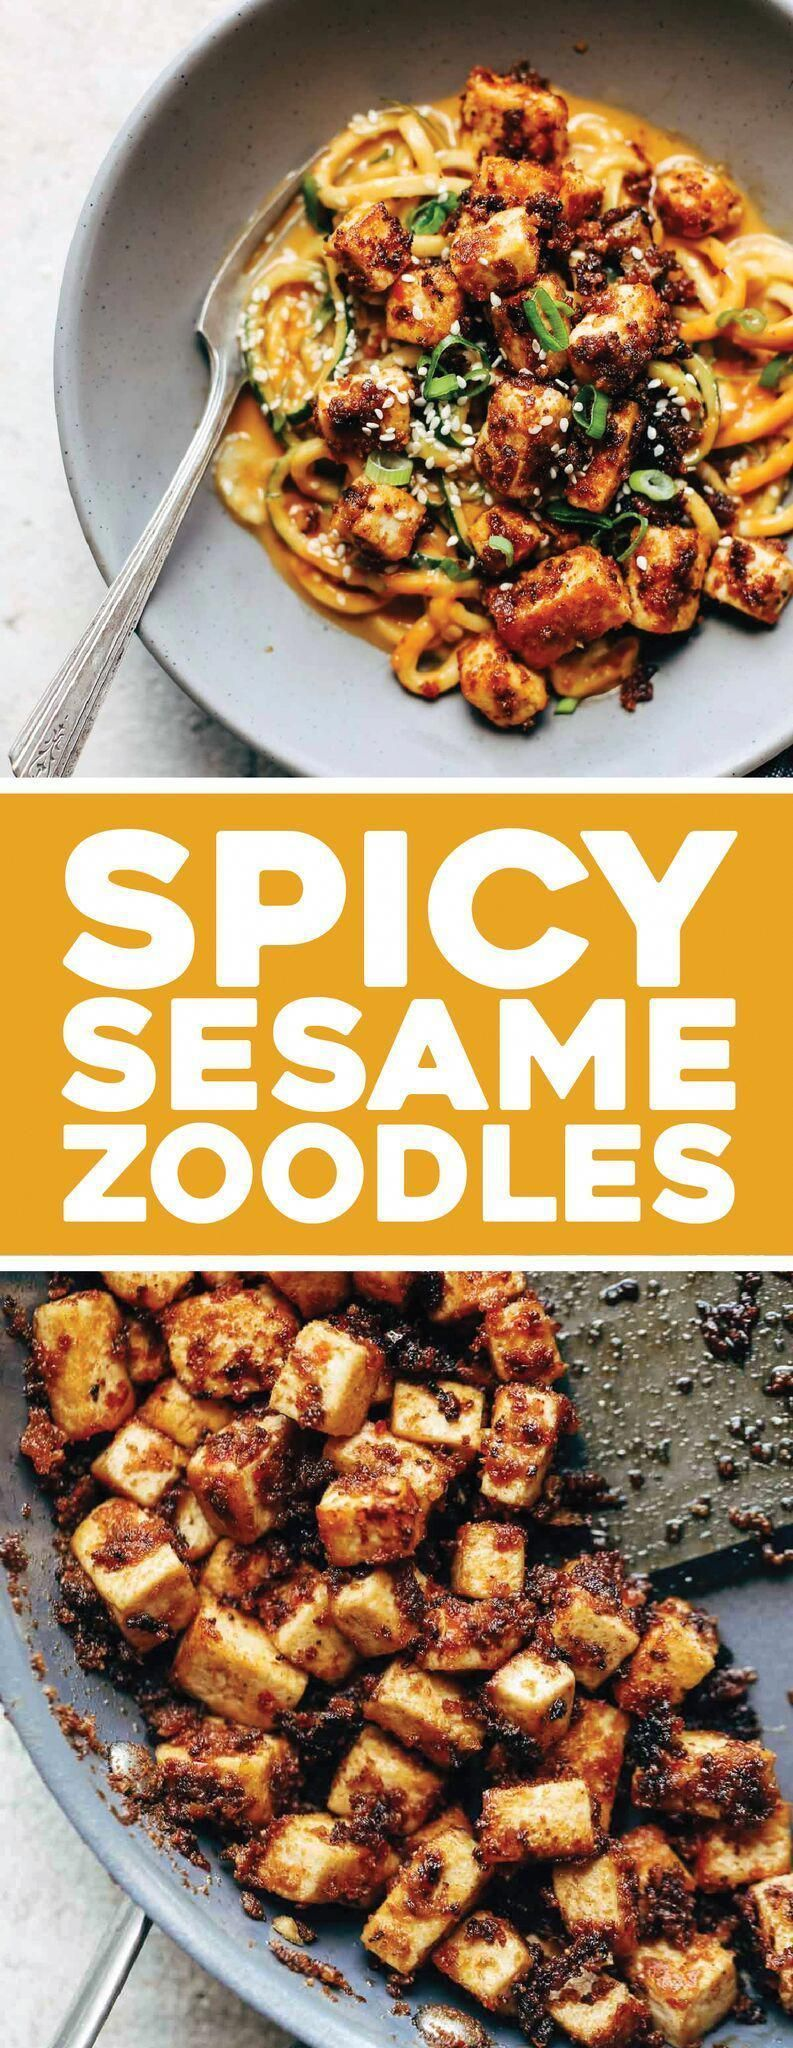 Spicy Sesame Zoodles with Crispy Tofu! SUPER easy recipe with familiar ingredients - soy sauce, peanut butter, sesame oil, garlic, zucchini, and tofu. Vegan / Vegetarian Sesame Zoodles with Crispy Tofu! SUPER easy recipe with familiar ingredients - soy sauce, peanut butter, sesame oil, garlic, zucchini, and tofu. Vegan / Vegetarian  